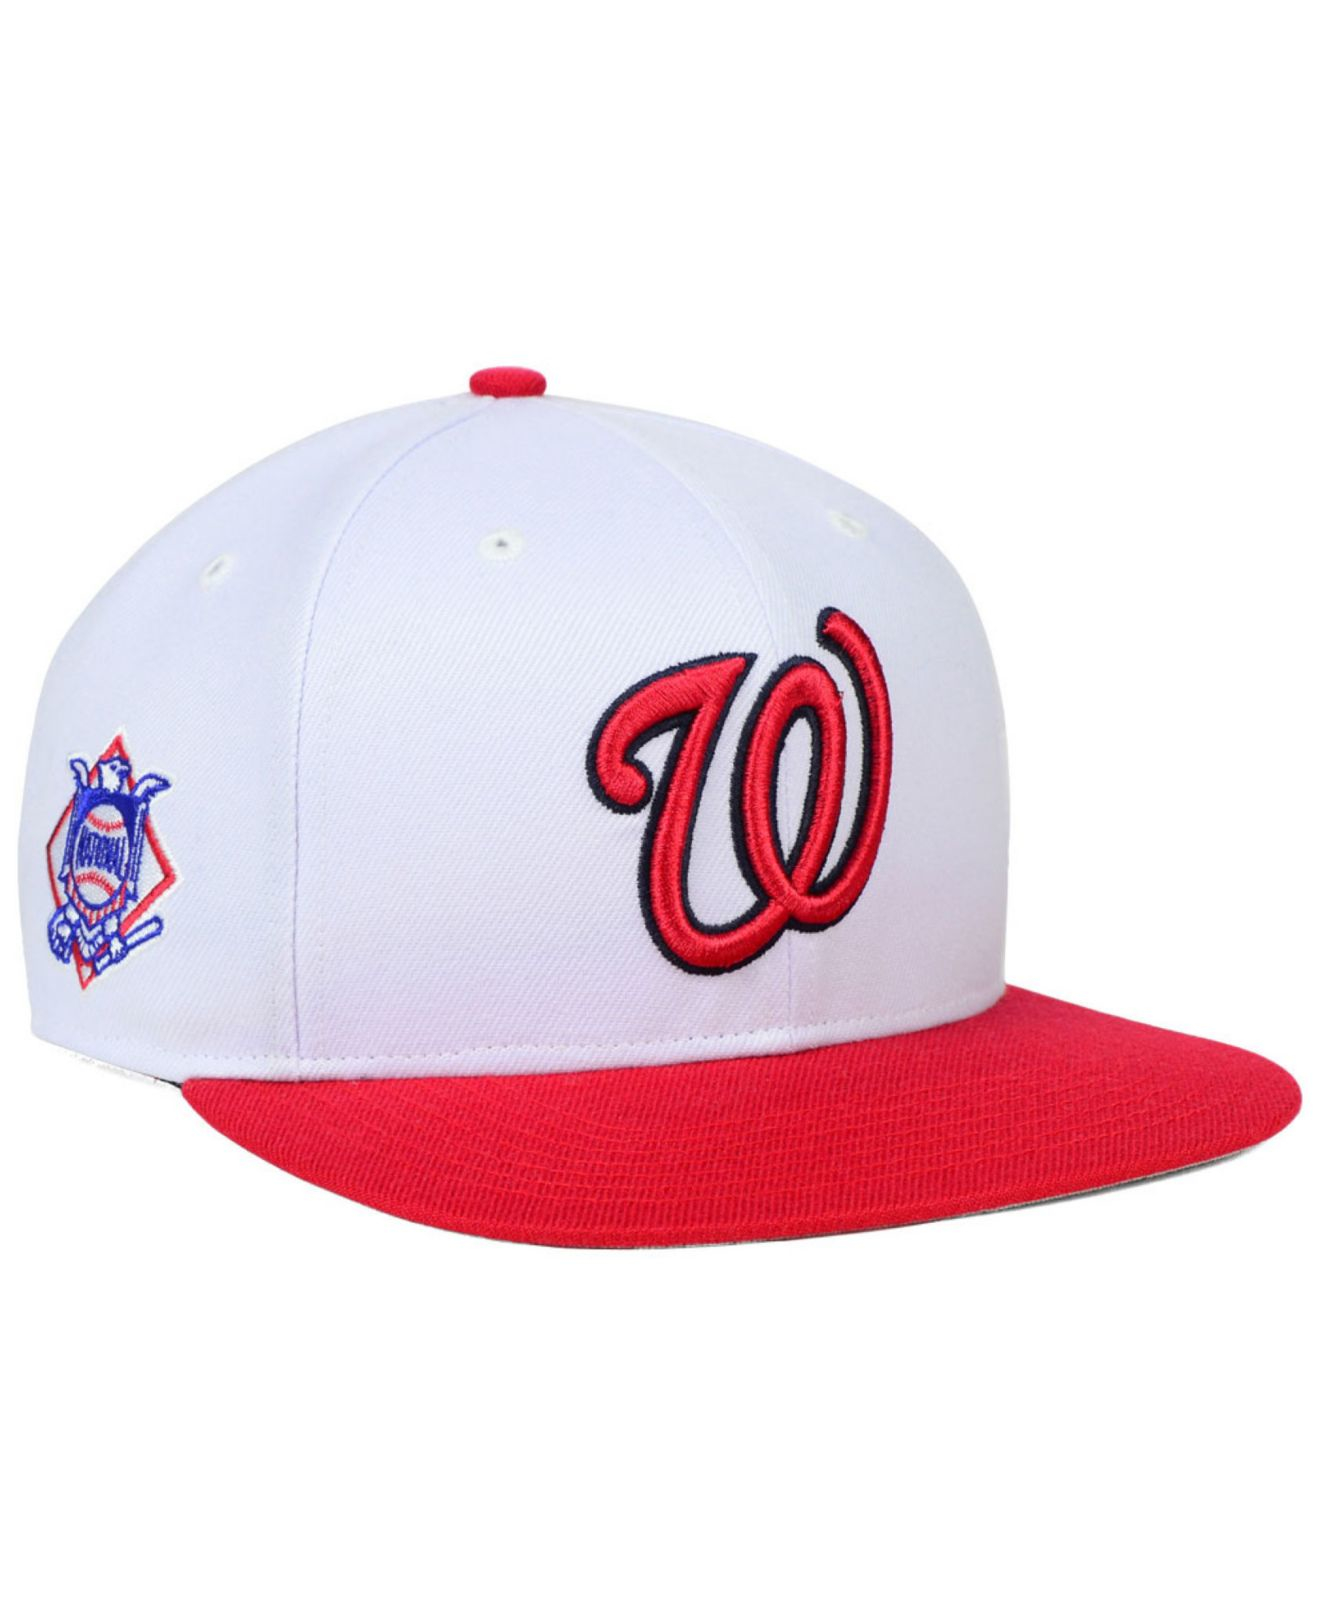 size 40 3df75 26d05 ... canada lyst 47 brand washington nationals sure shot snapback cap in red  for men 5272b 7fde8